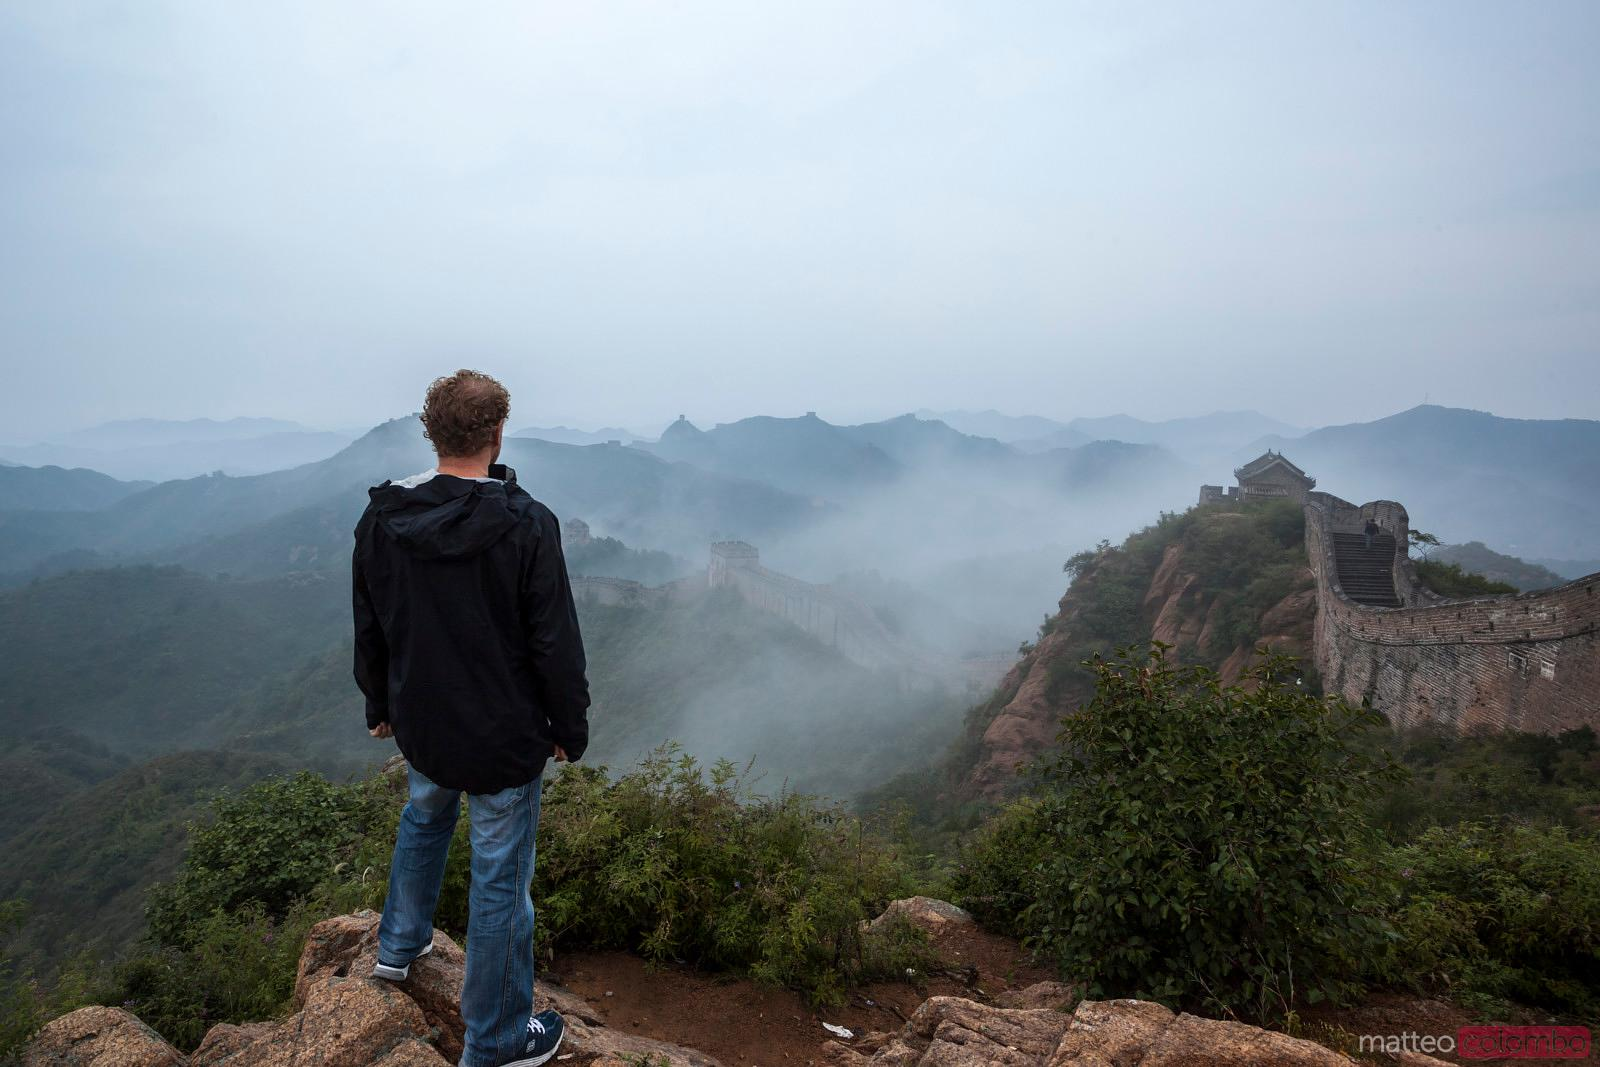 Tourist looking at the Great Wall in a misty morning